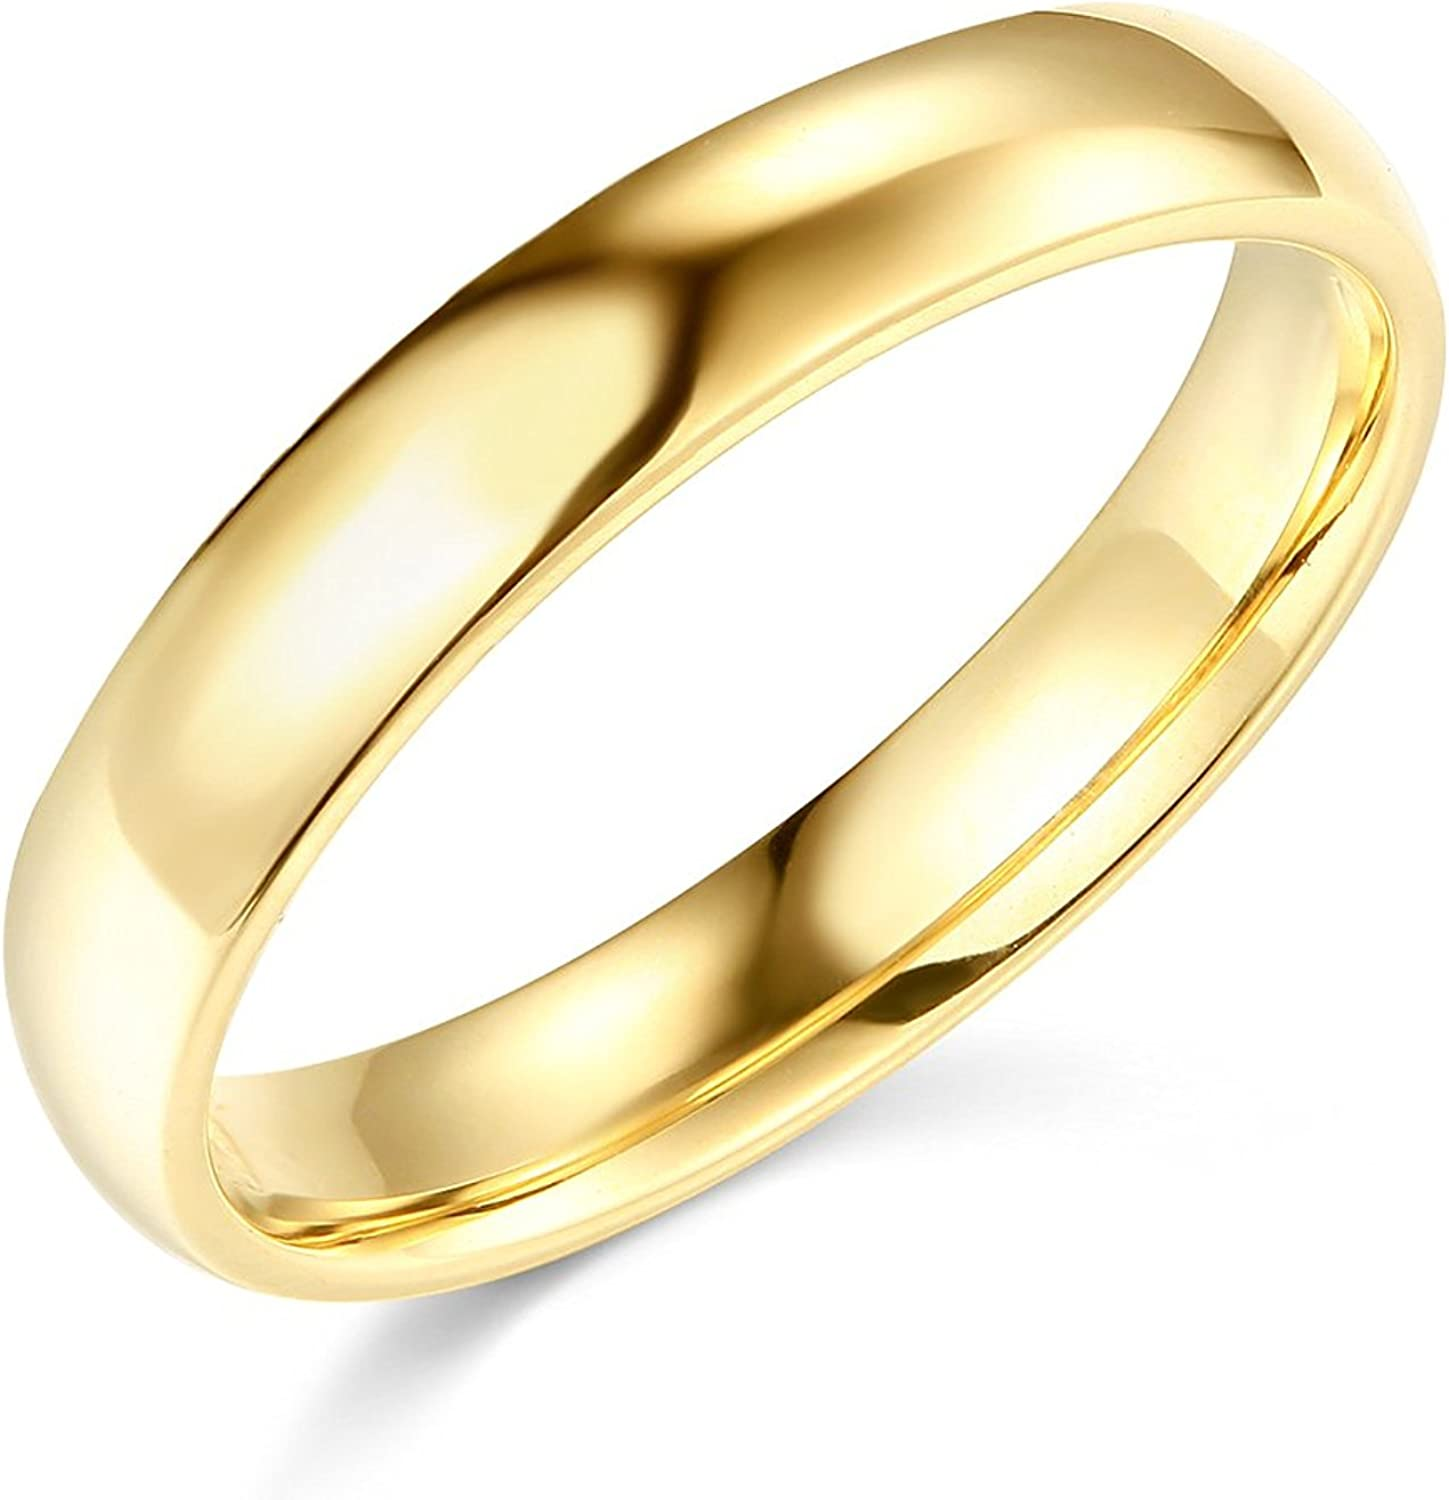 4 mm Solid 14k Yellow Gold Band Plain Wedding Ring Polished Finish Regular Fit